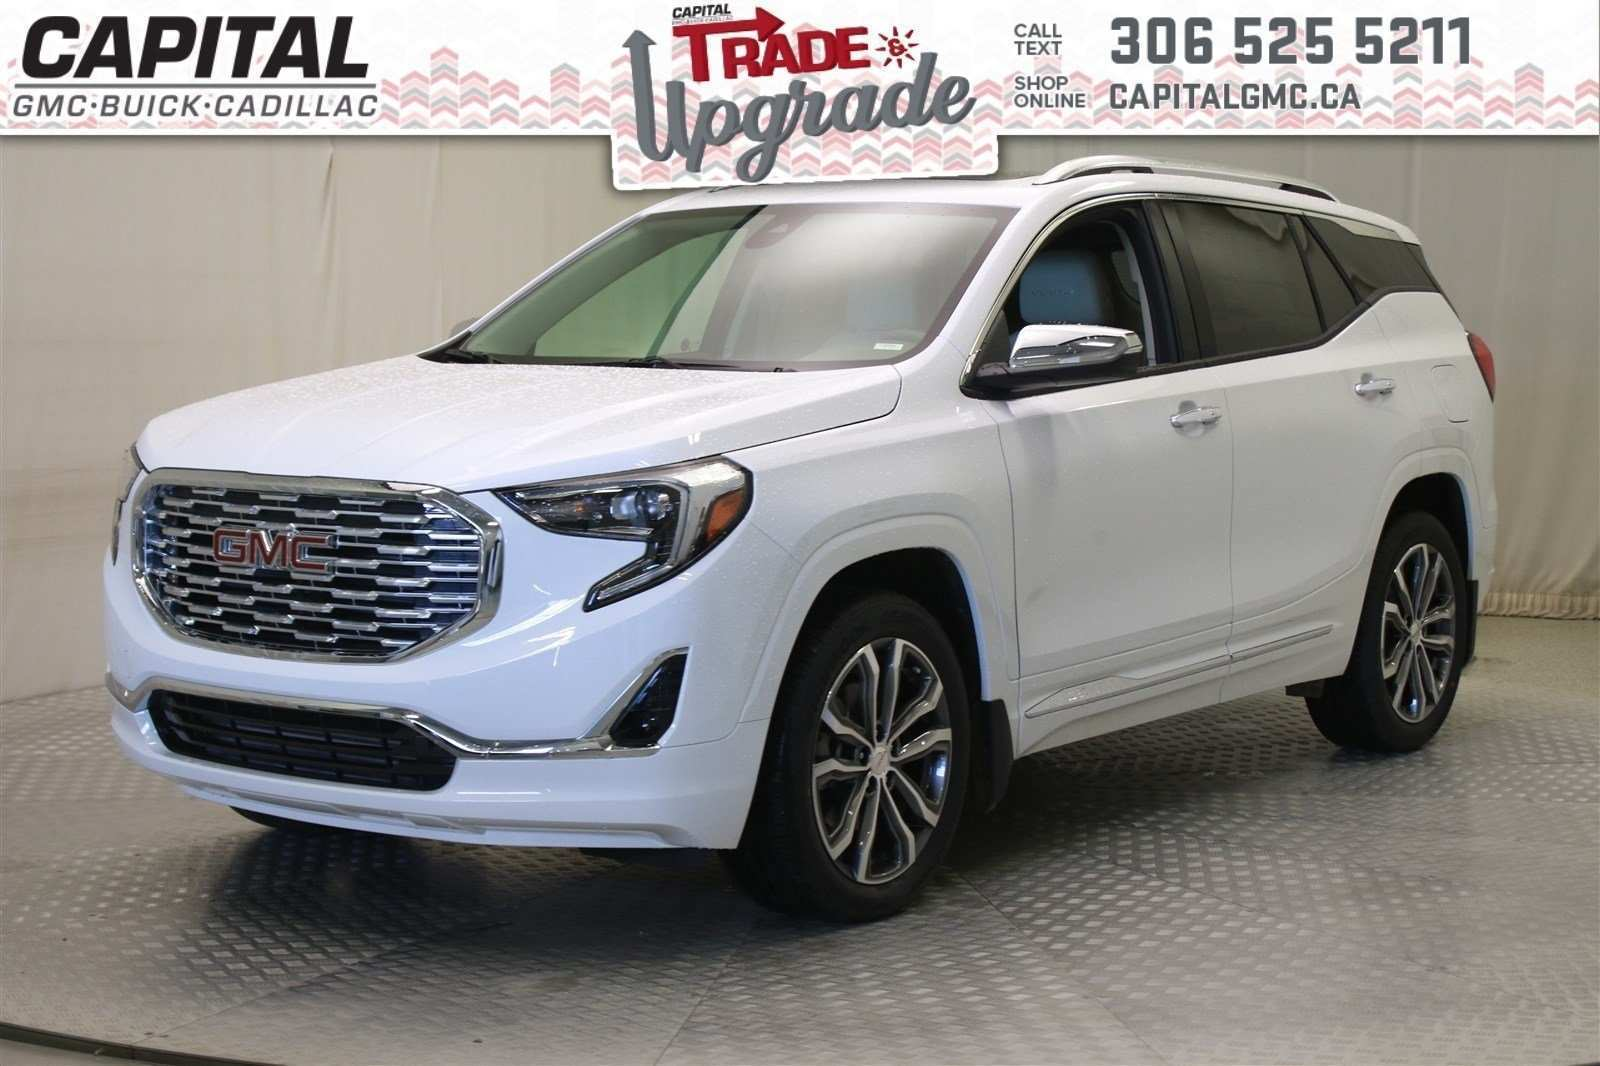 67 New The Gmc 2019 Terrain Denali First Drive Performance with The Gmc 2019 Terrain Denali First Drive